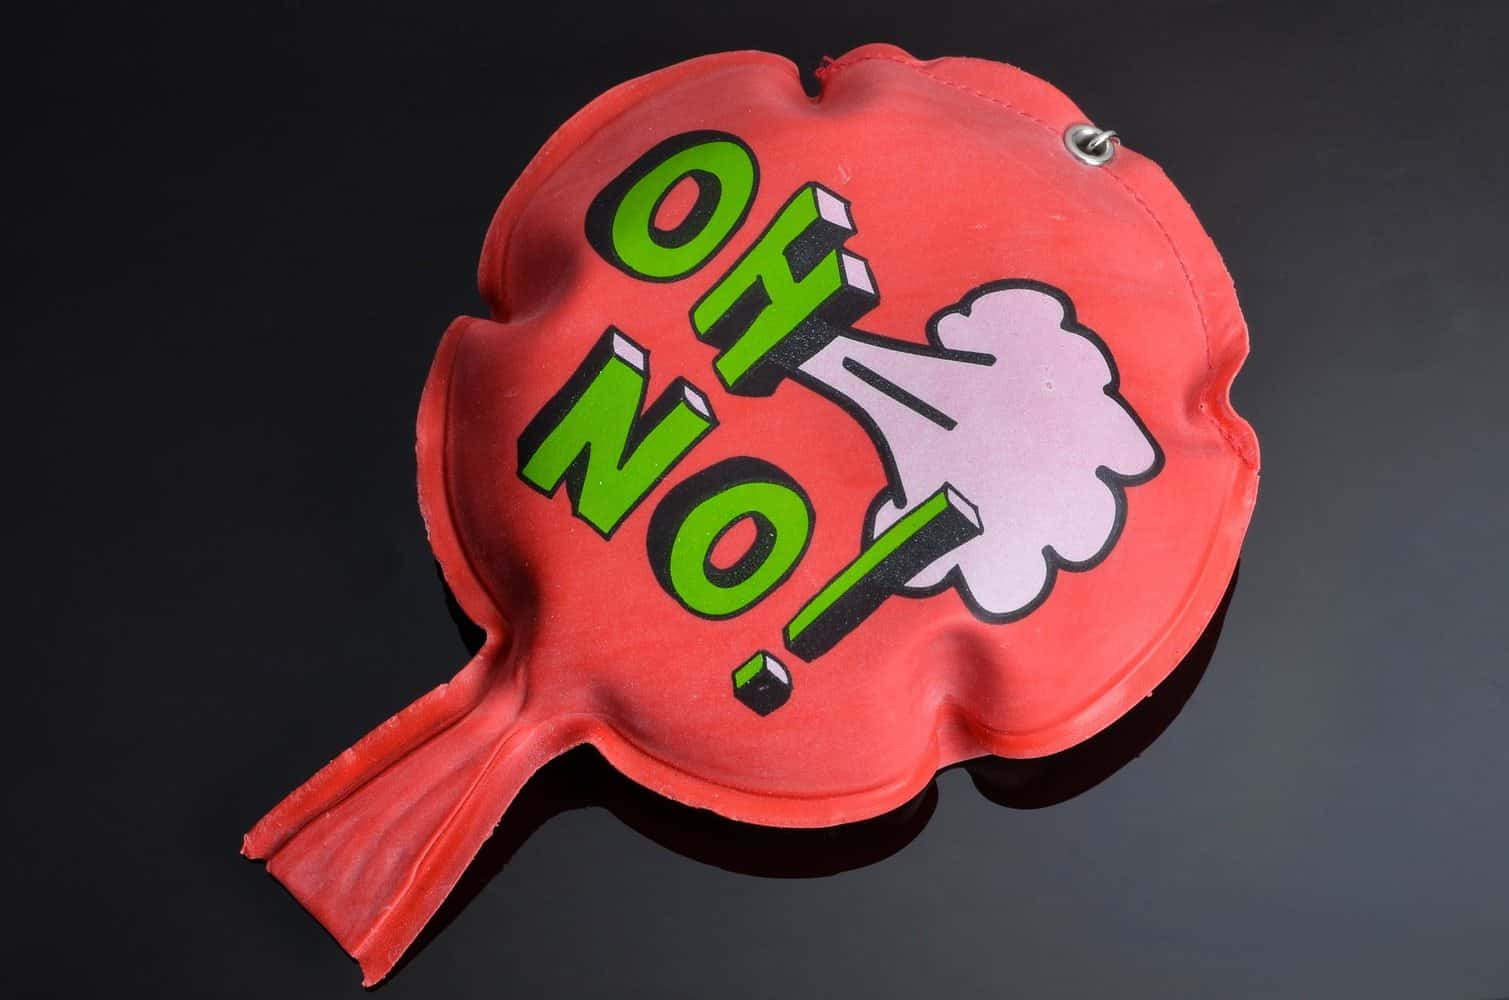 A whoopee cushion with the phrase 'Oh No!' on it.